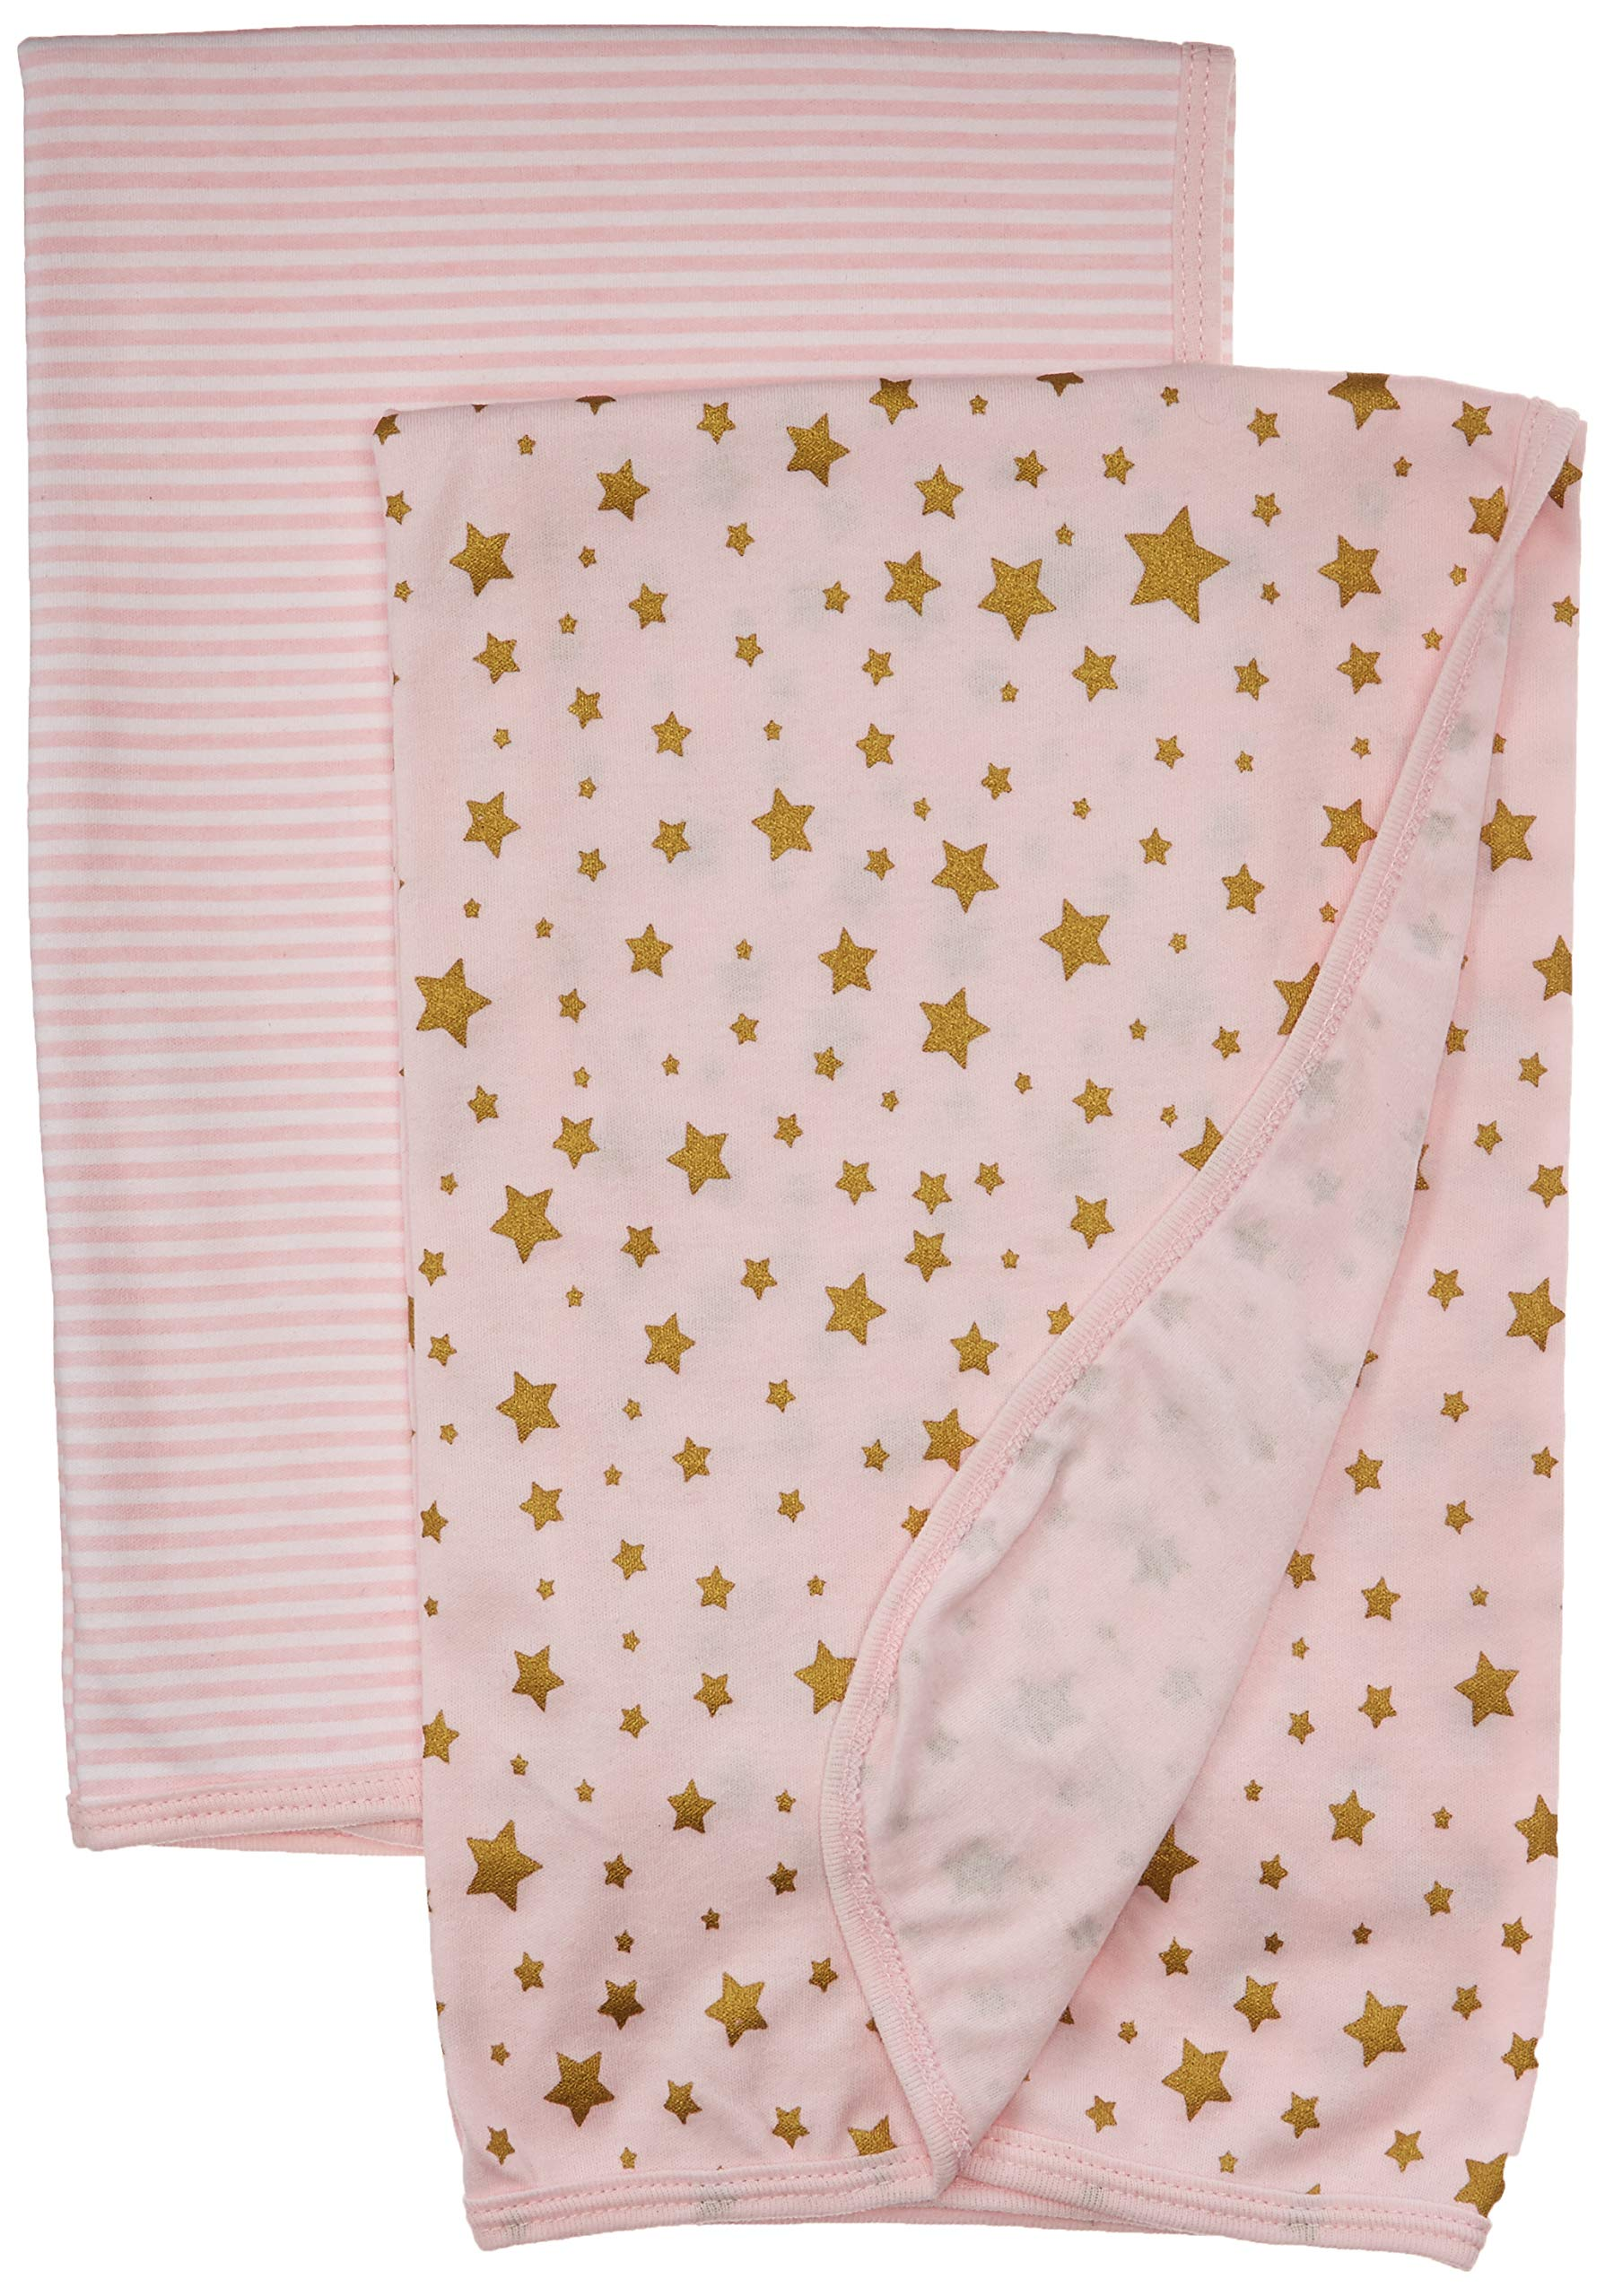 Hudson Baby Unisex Baby Cotton Swaddle Blankets, Gold Star, One Size